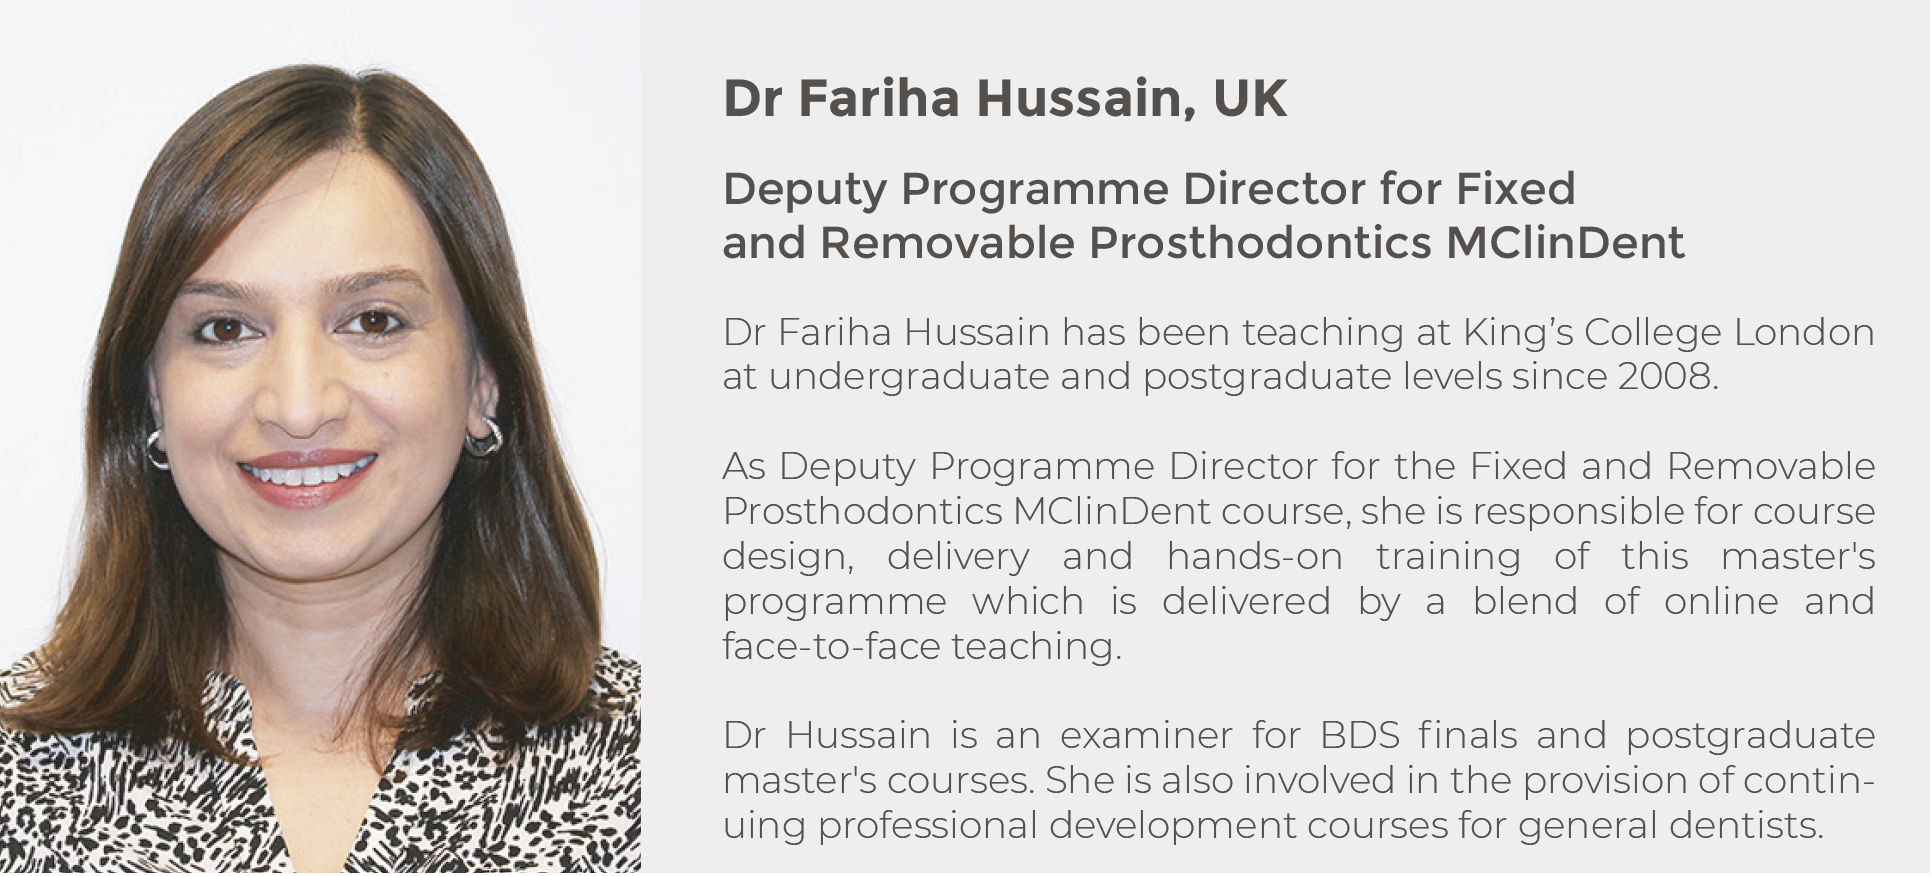 Dr Fariha Hussain, UK, Deputy Programme Director for Fixed and Removable Prosthodontics MClinDent. Dr Fariha Hussain has been teaching at King's College London at undergraduate and postgraduate levels since 2008. As Deputy Programme Director for the Fixed and Removable Prosthodontics MClinDent course, she is responsible for course design, delivery and hands-on training.